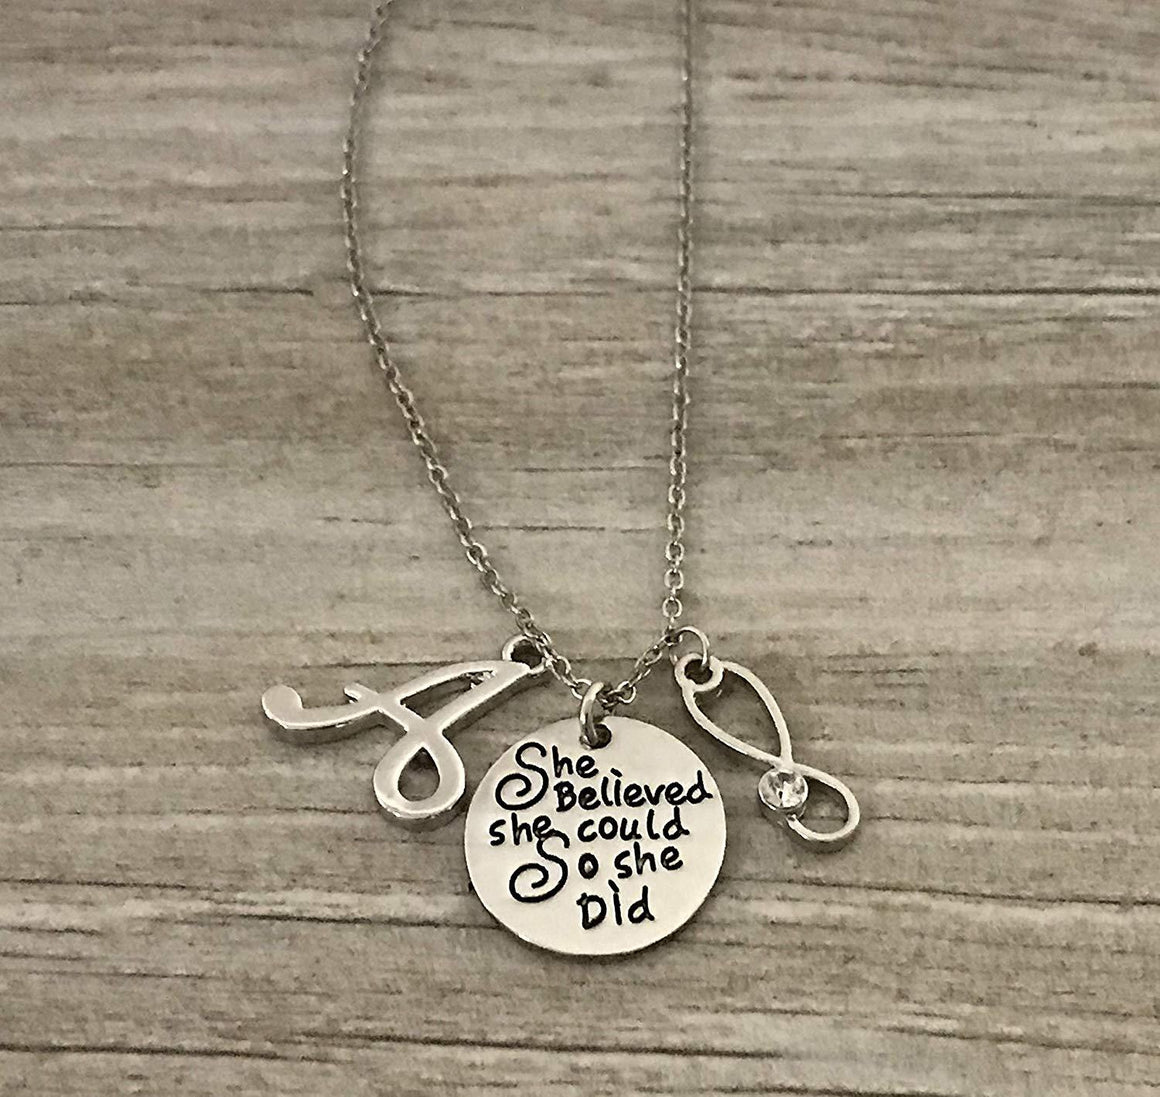 Personalized She Believed She Could Nurse Necklace